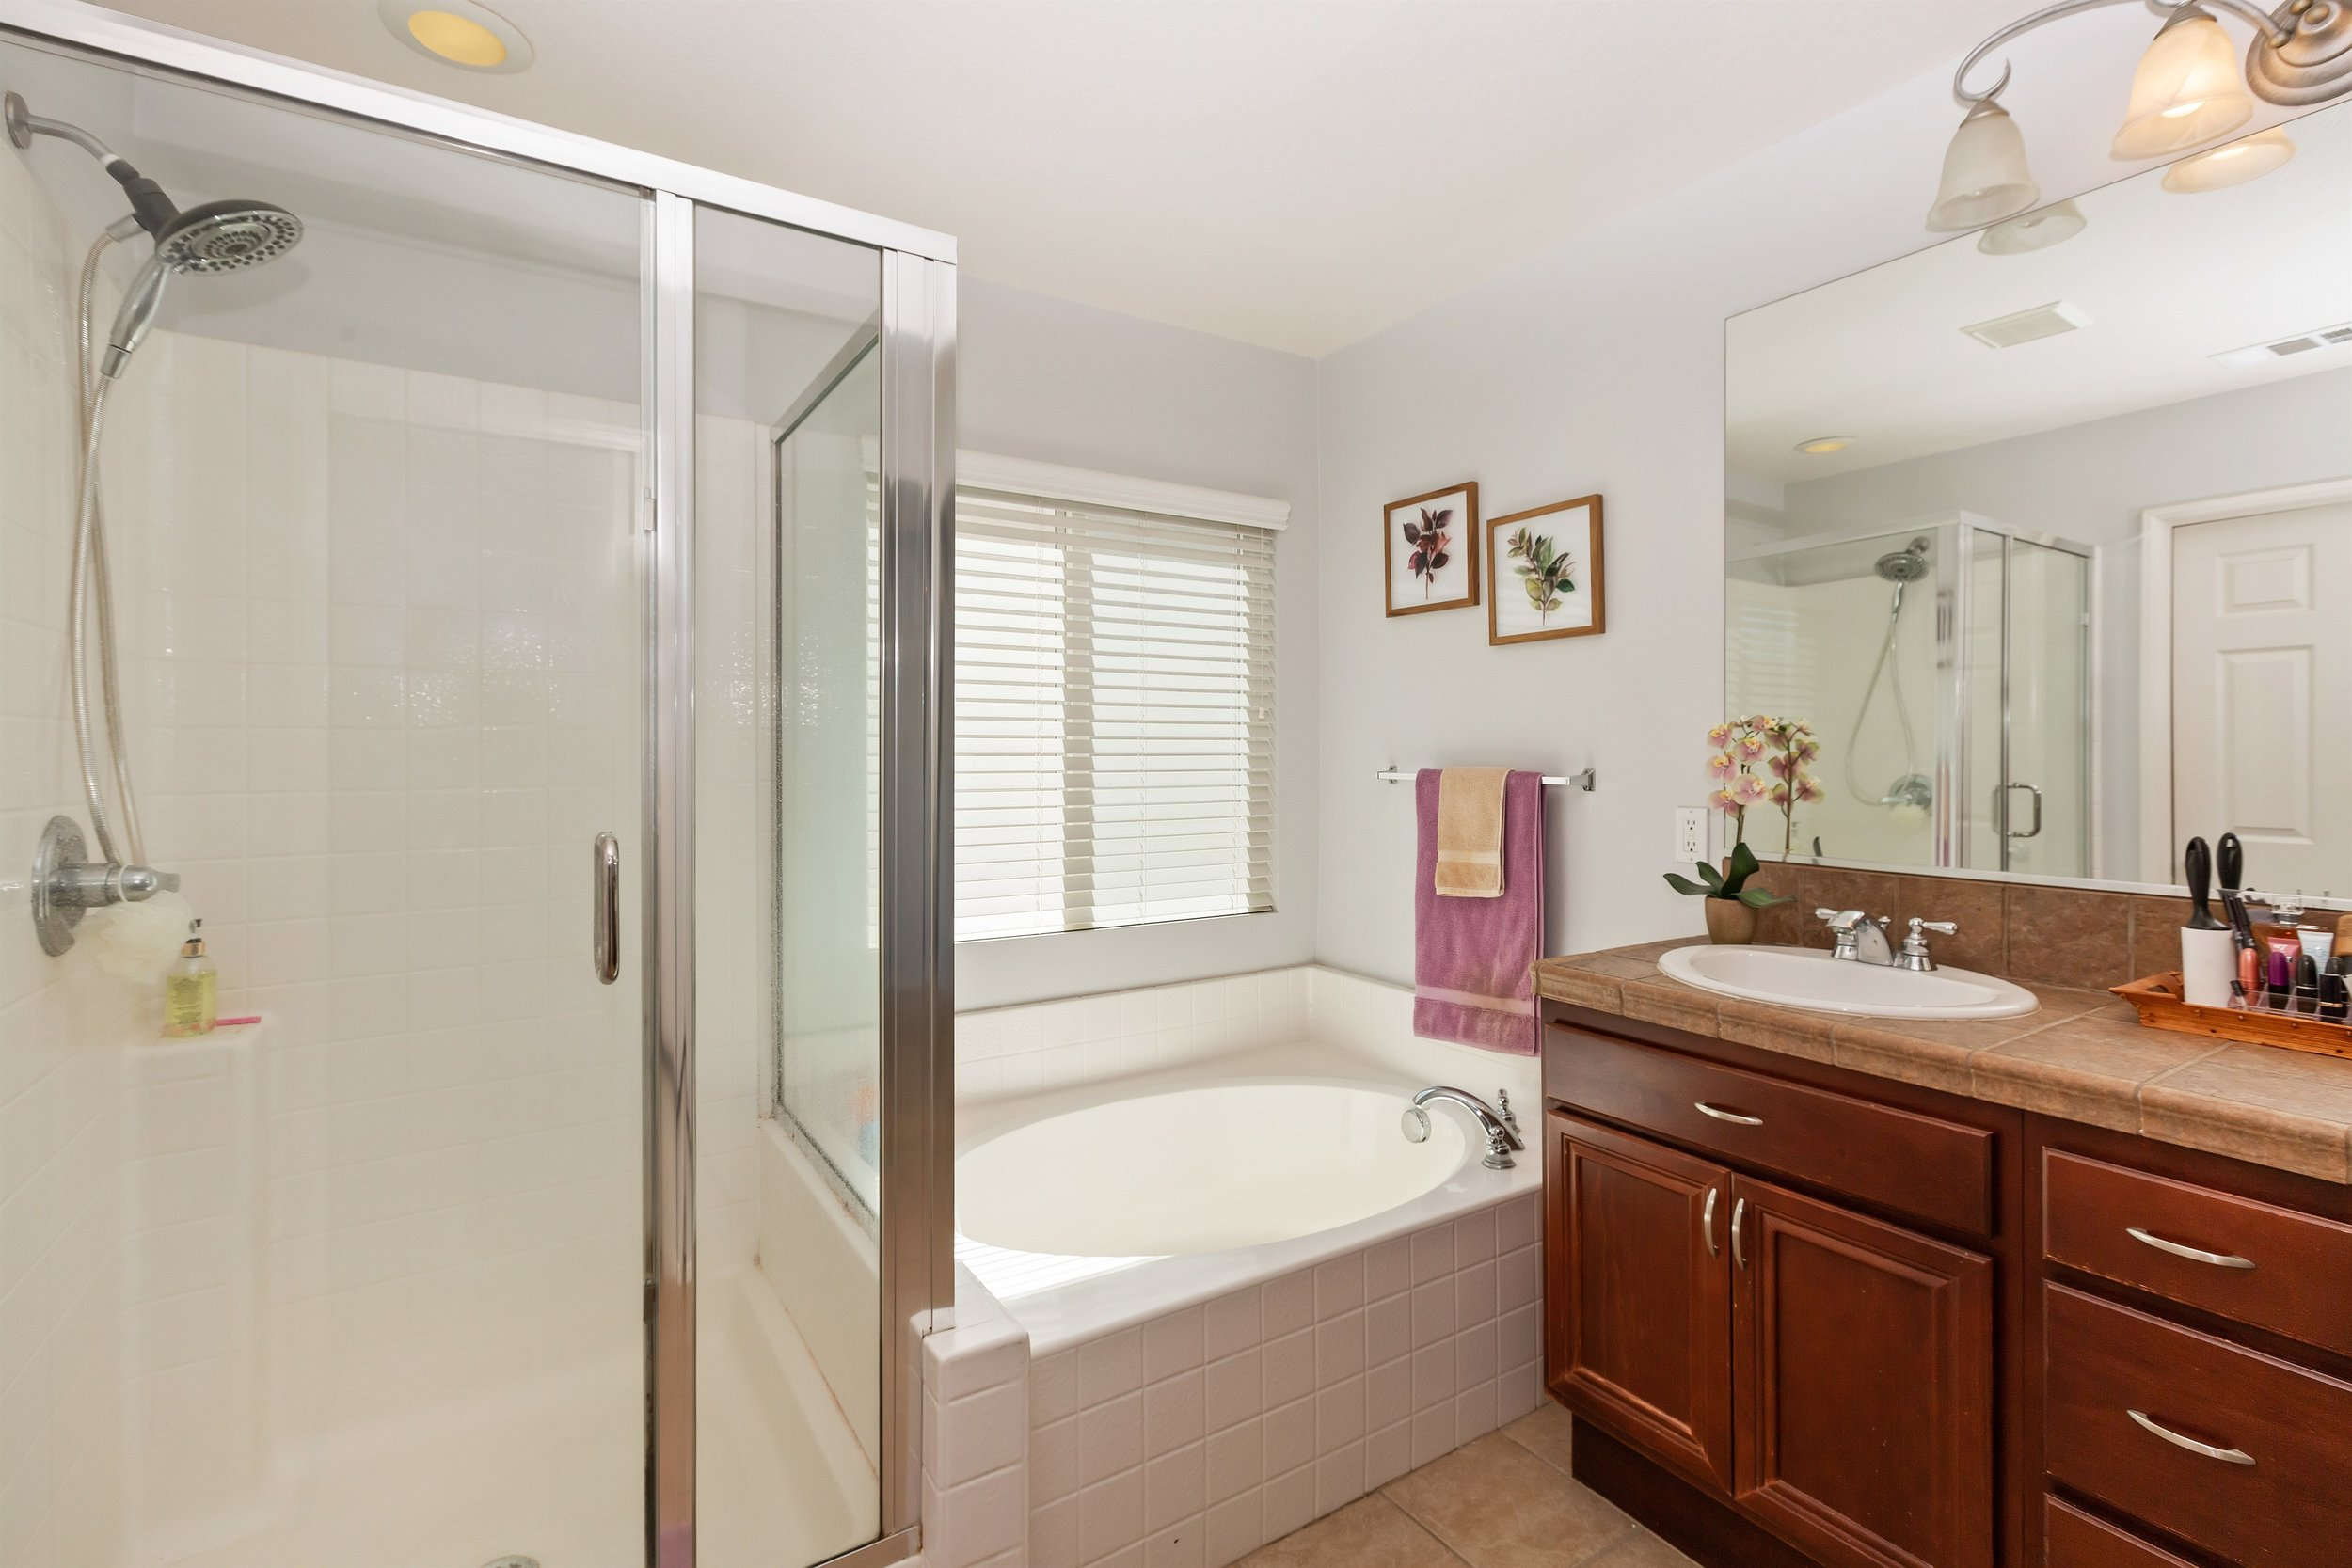 026_Master Bathroom.jpg